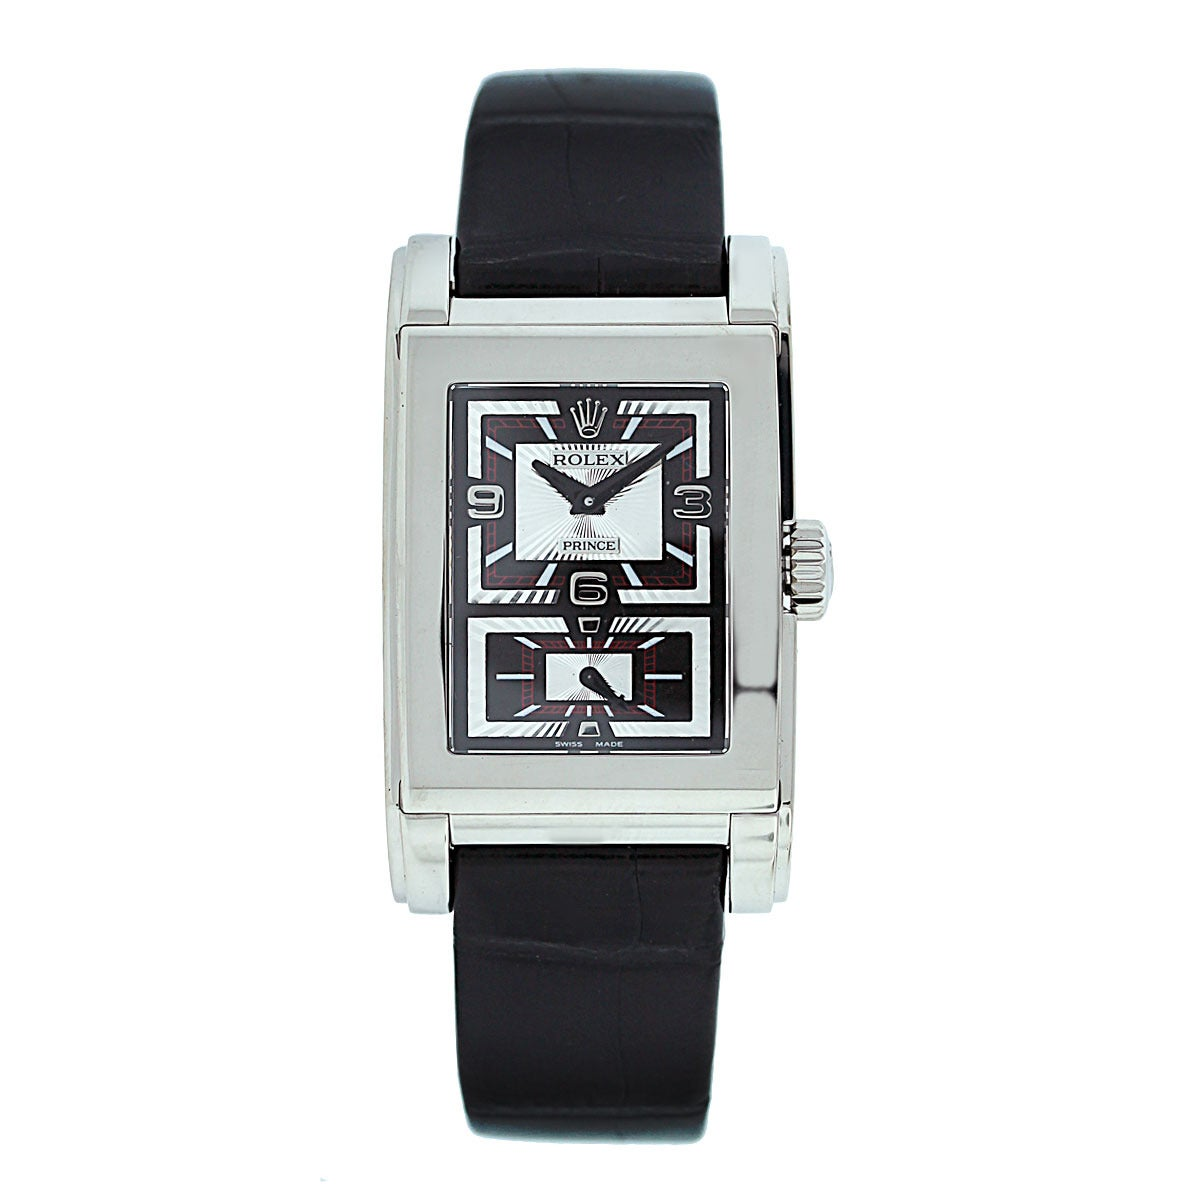 """Brand: Rolex Model: Cellini Prince 5443/9 18K White Gold Mens Watch Material: 18K White Gold Dial: Black and silvered dial, with a double """"rayon flammé de la gloire"""" guilloche Bezel: 18K white gold fixed rectangular Case Measurements:"""